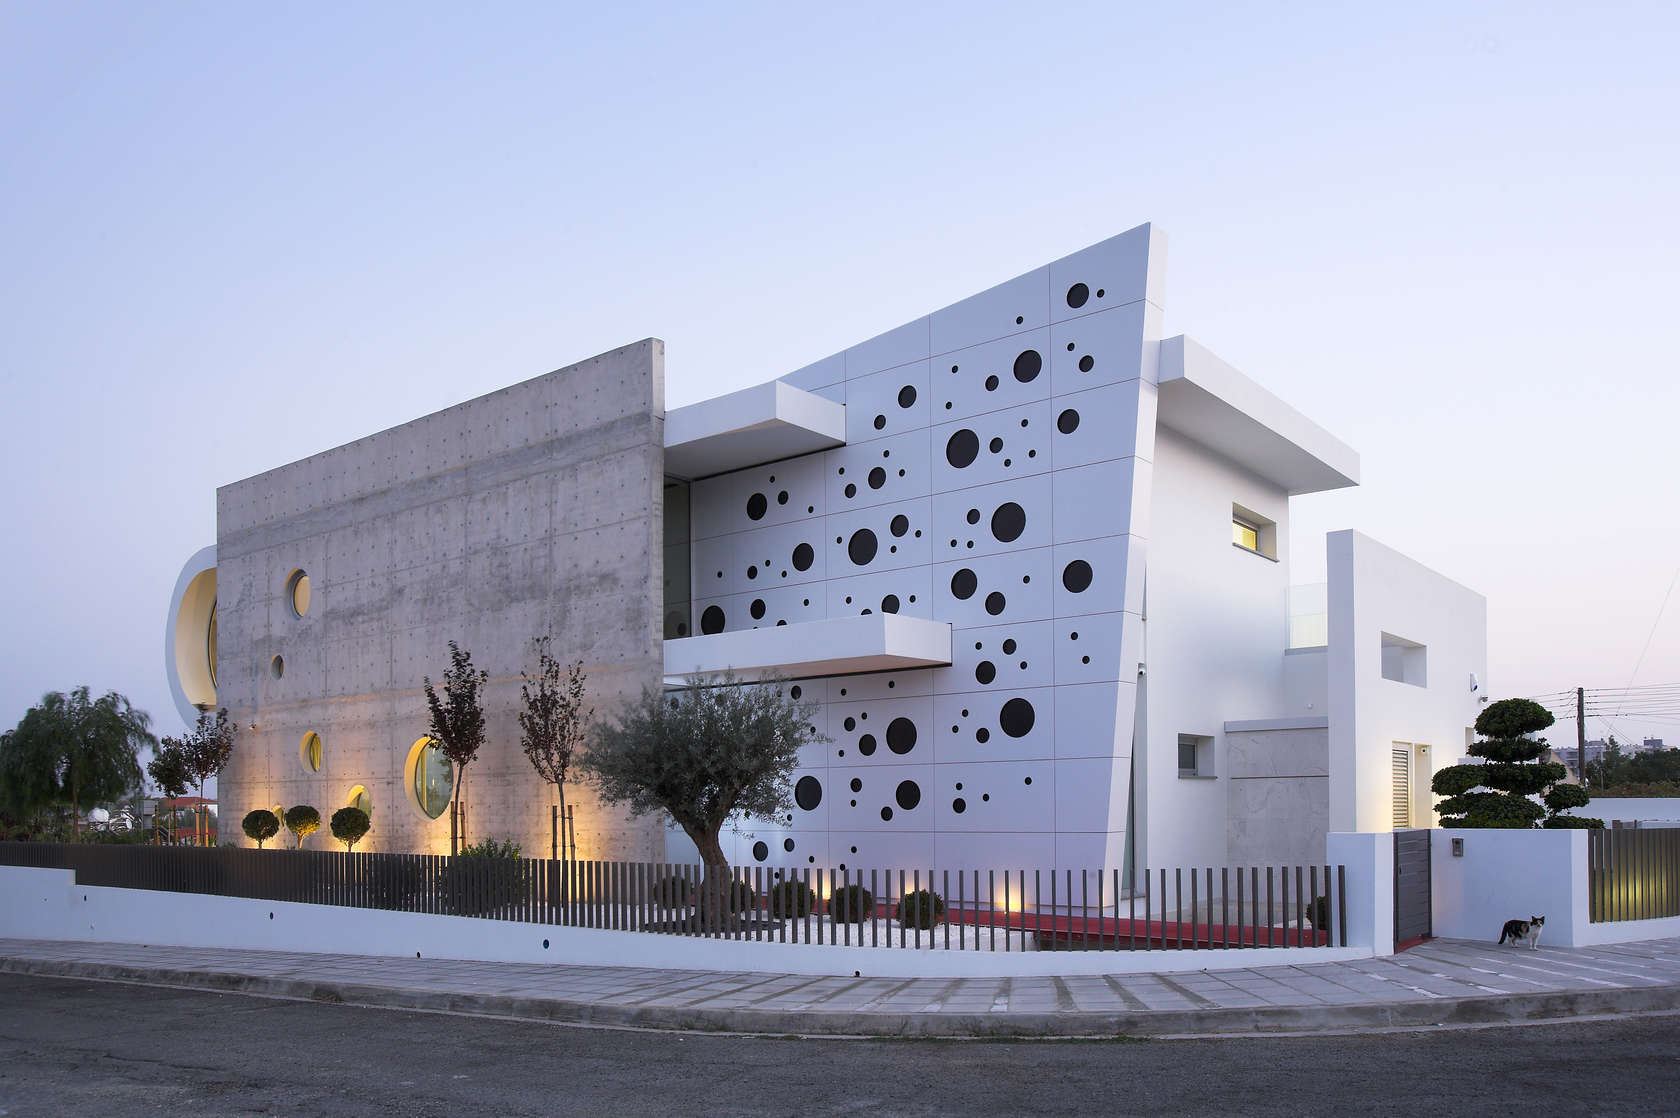 This perforated building located in nicosia cyprus is a striking